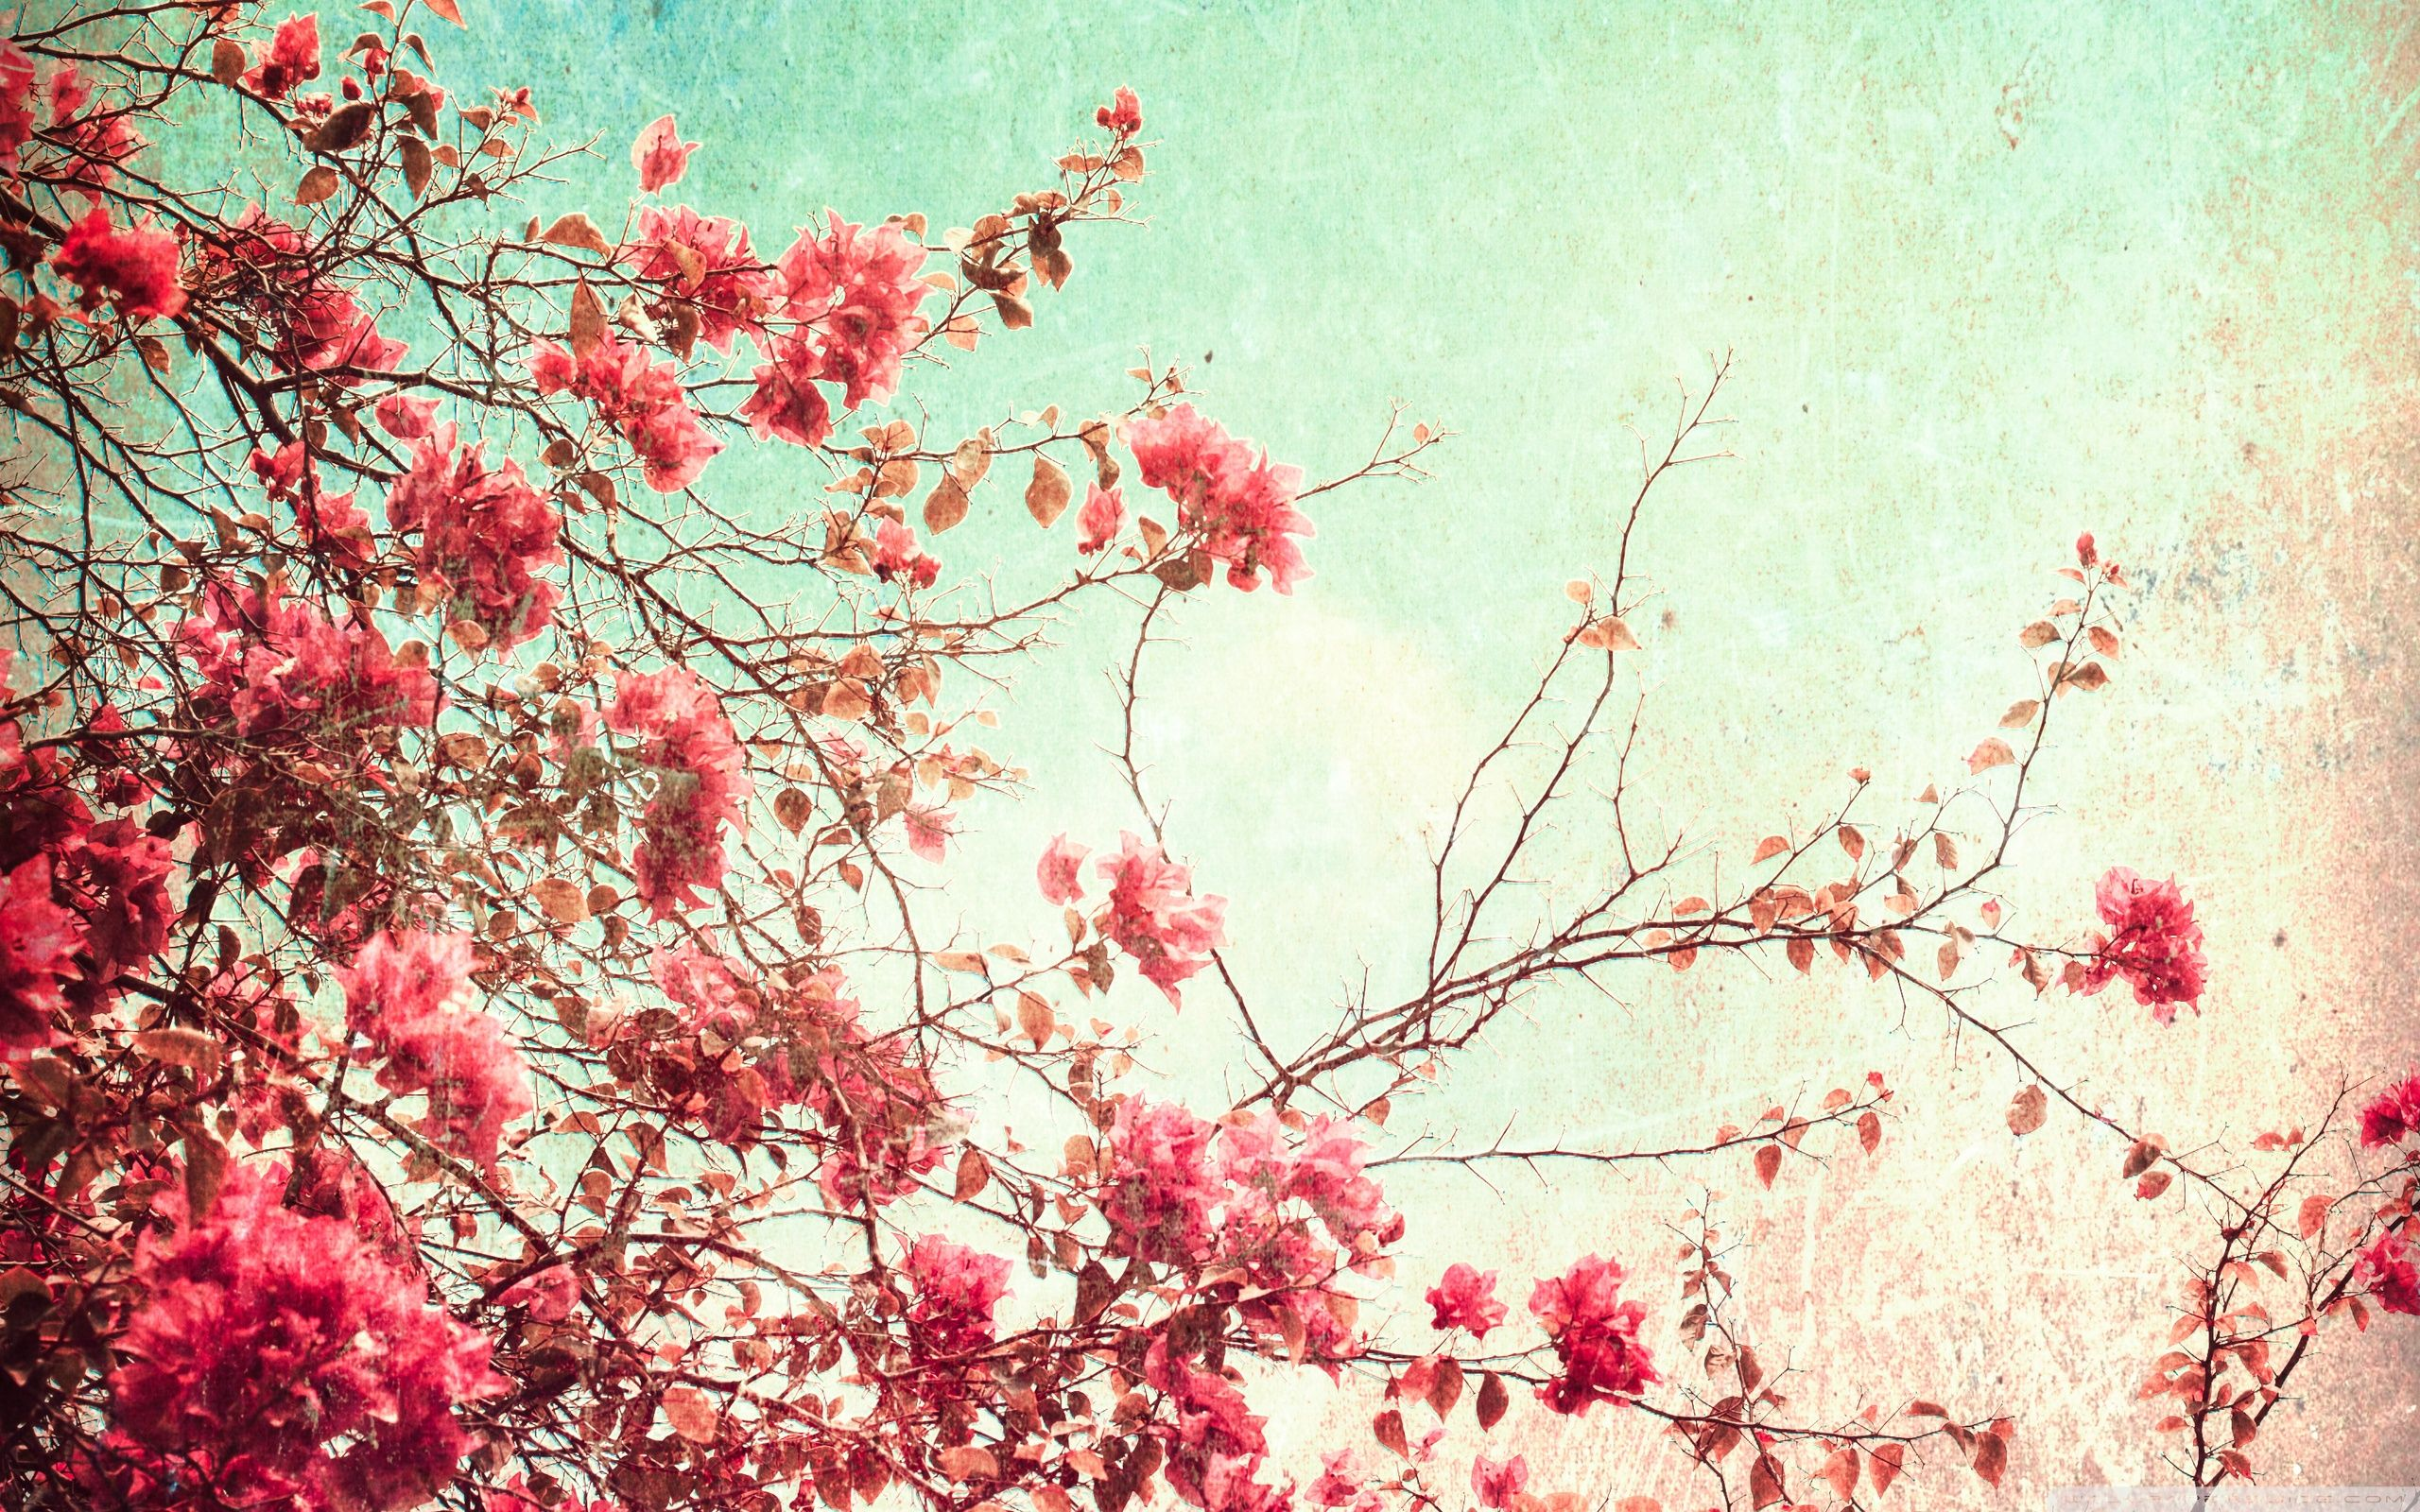 Wallpapers For Desktop Roses Vintage Vintage Floral Backgrounds Vintage Flowers Wallpaper Vintage Desktop Wallpapers